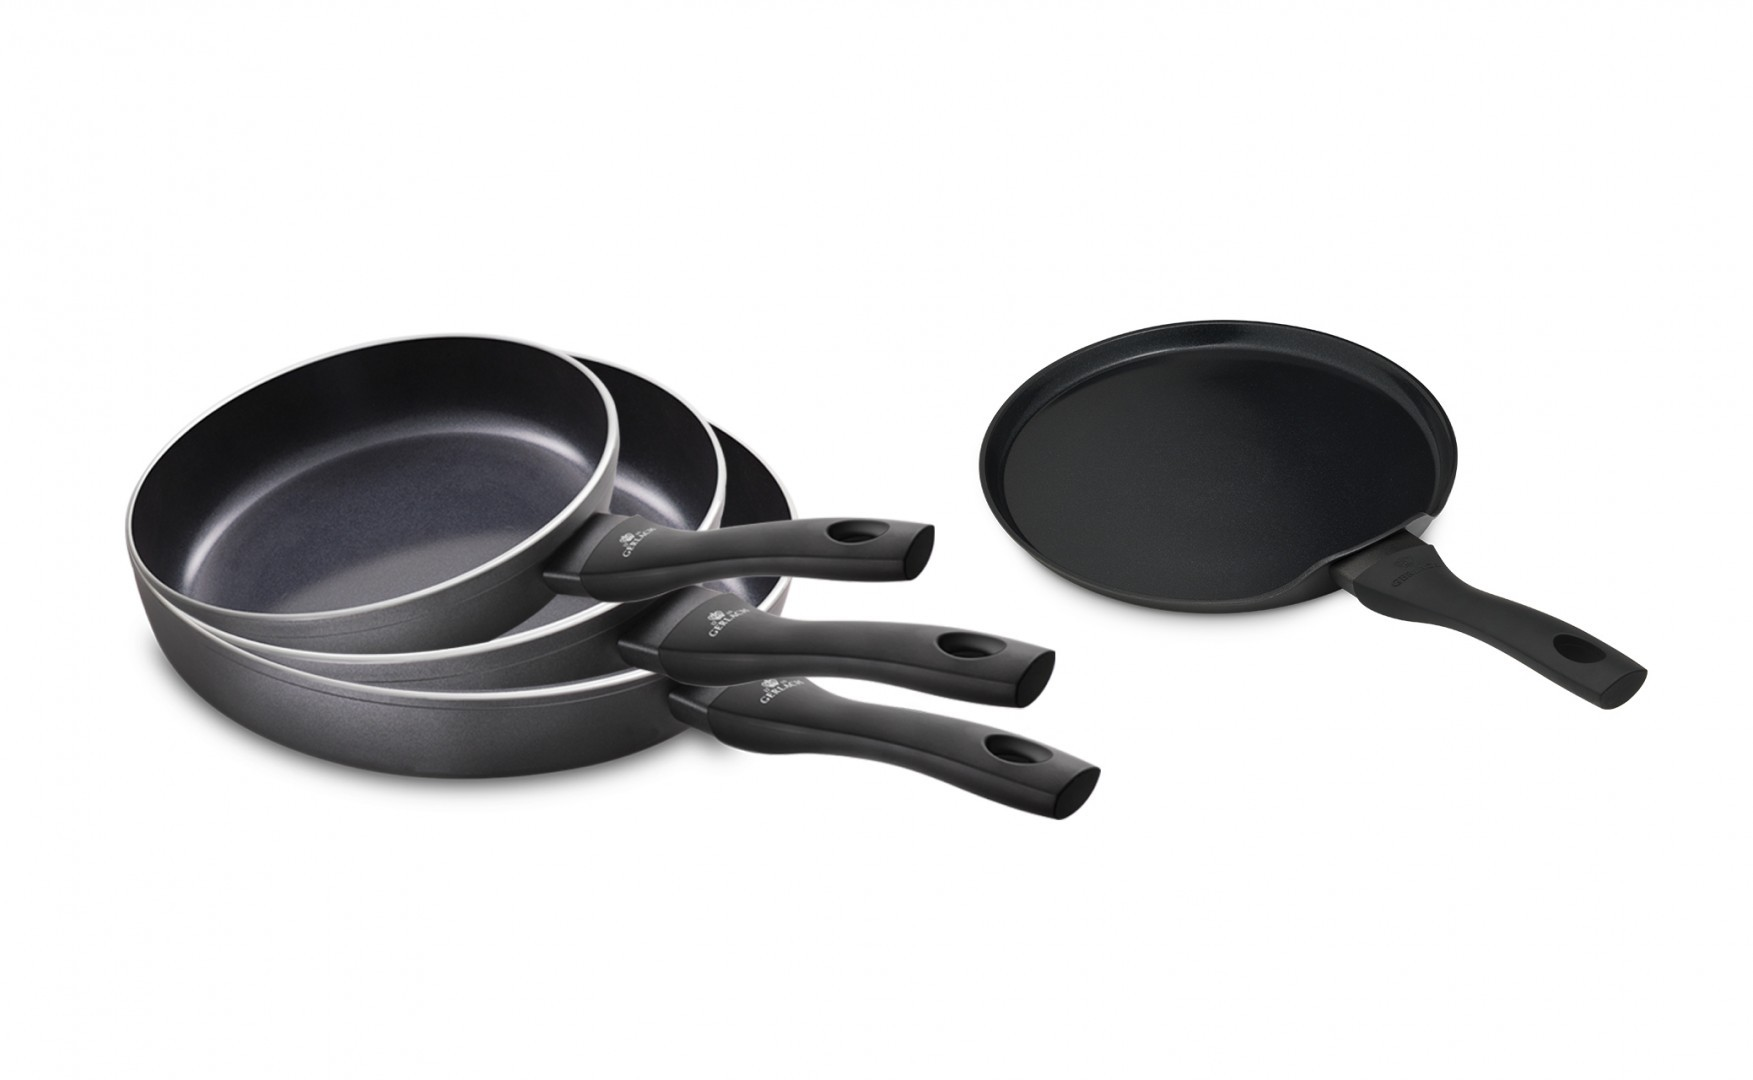 3x Frying pan CONTRAST PROCOAT + Pancake frying pan HARMONY CLASSIC